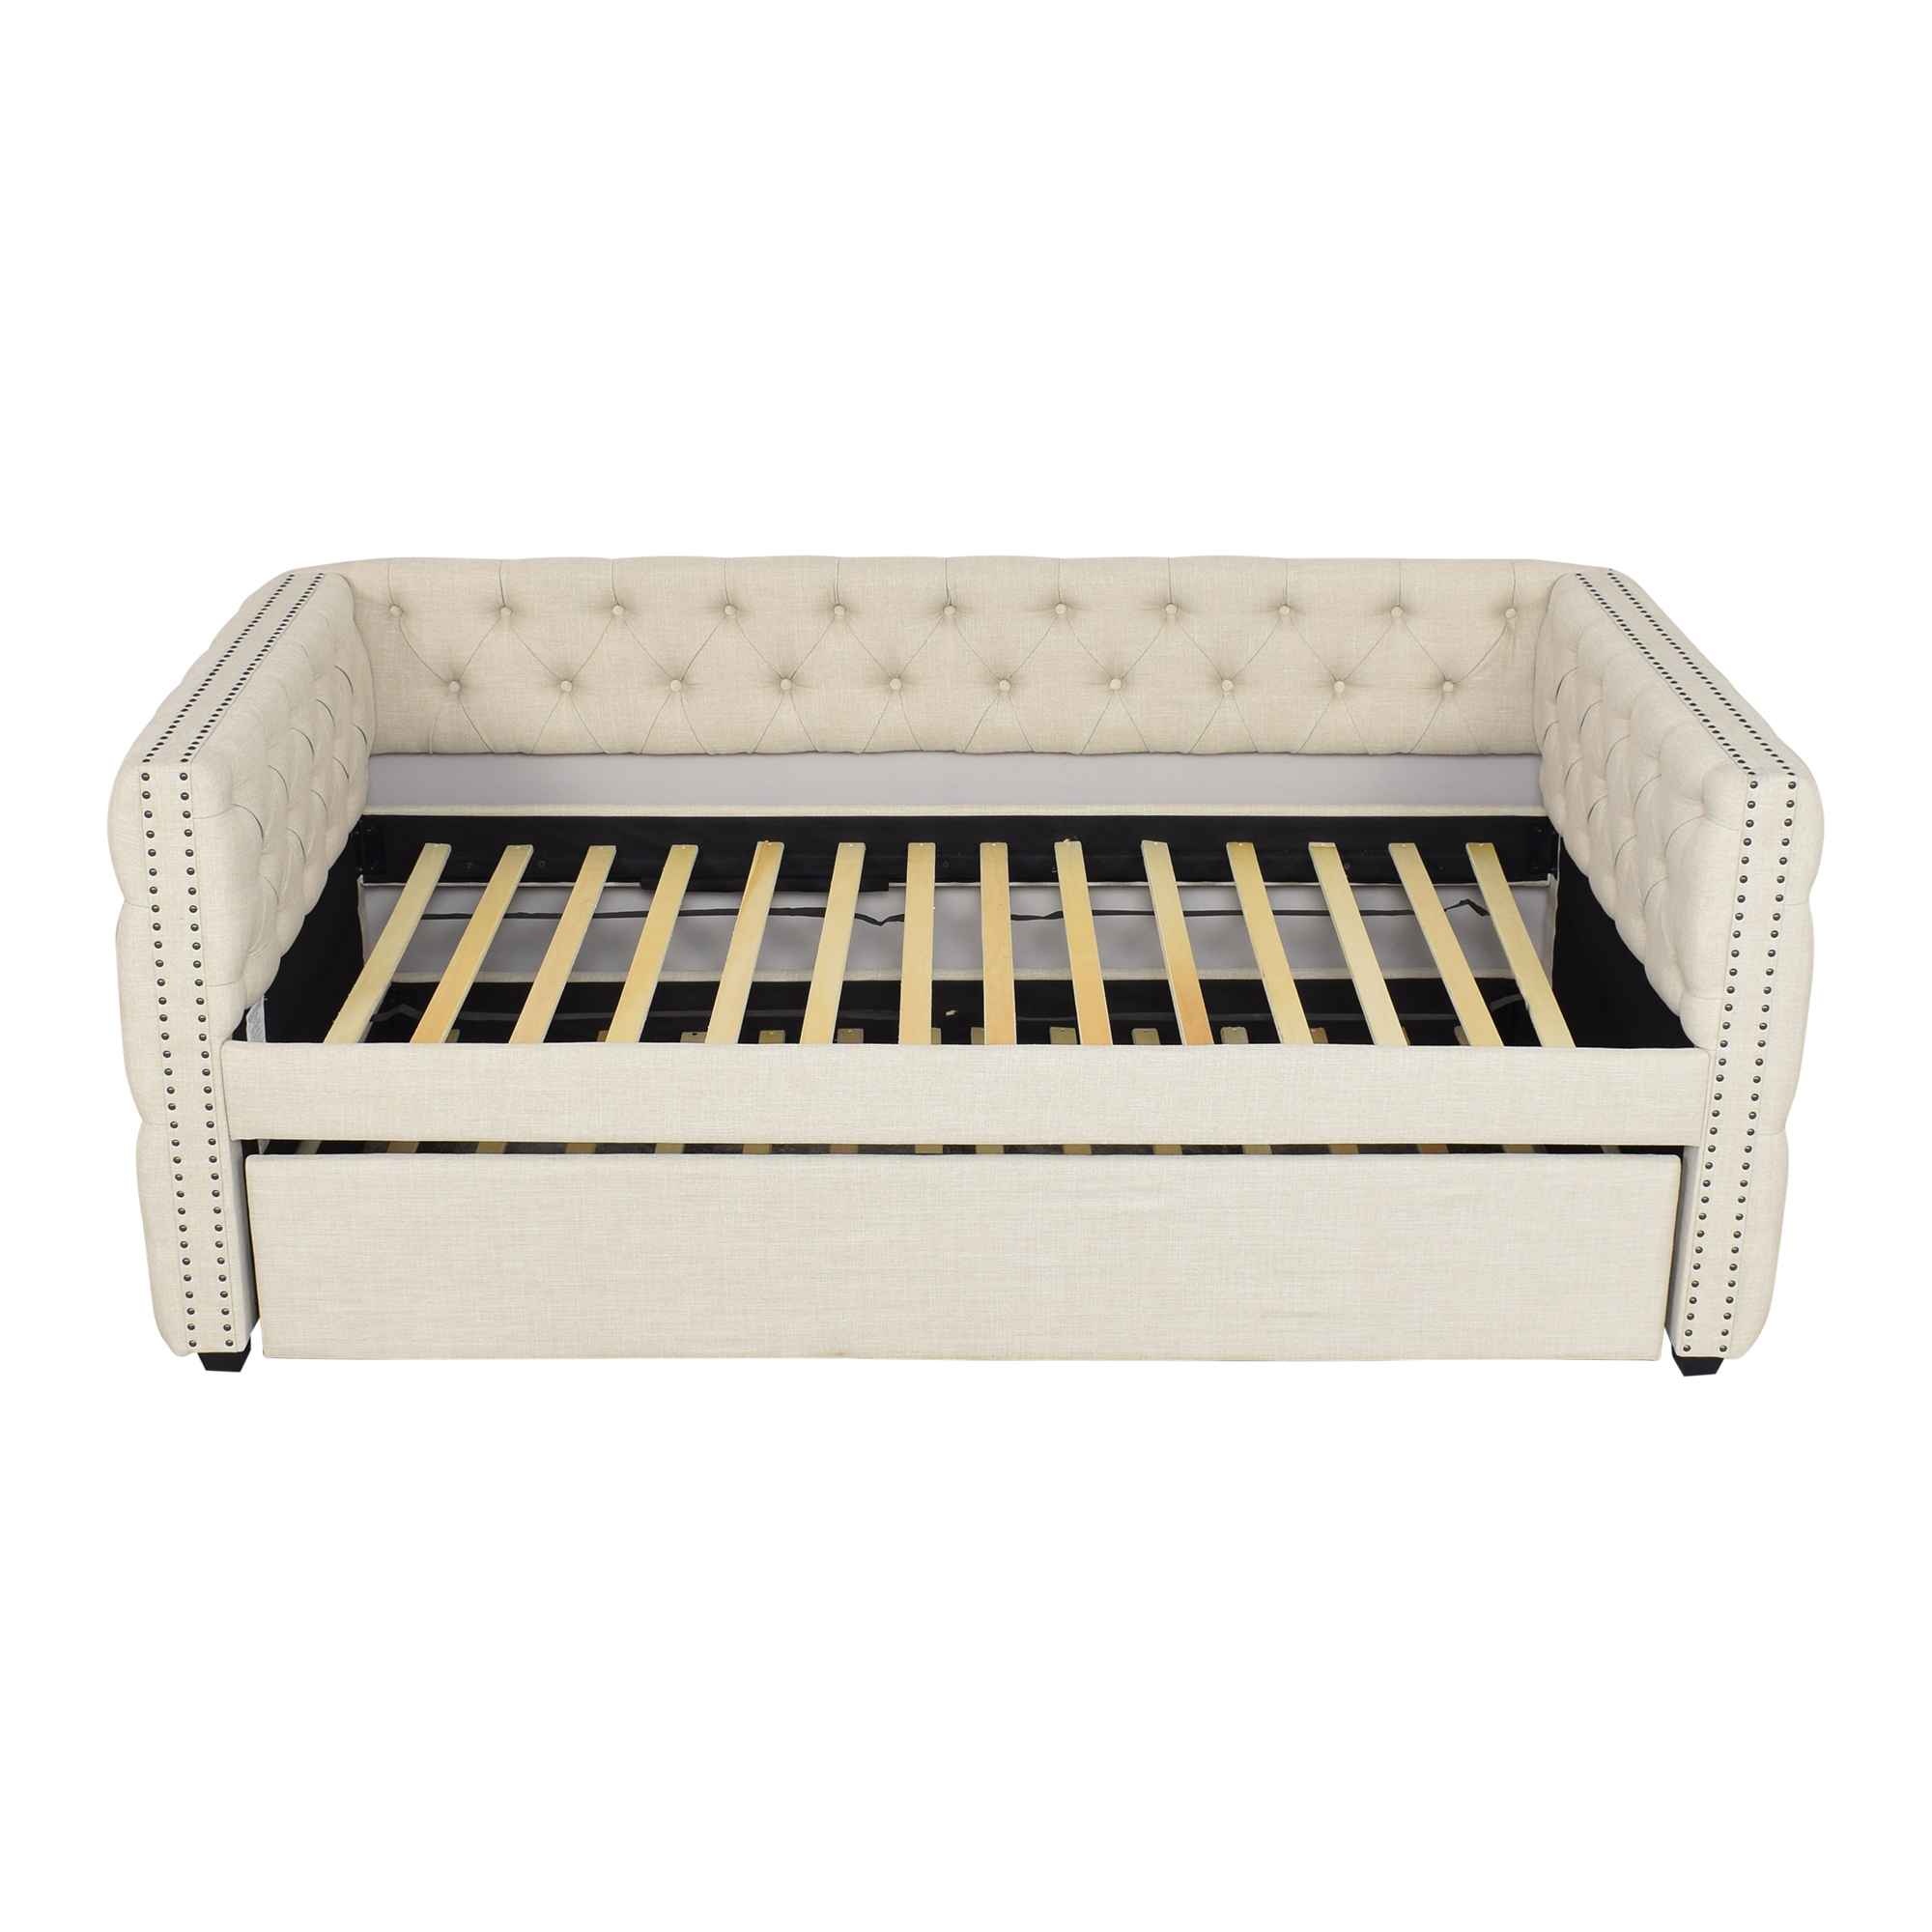 House of Hampton House of Hampton Ghislain Twin Daybed with Trundle for sale